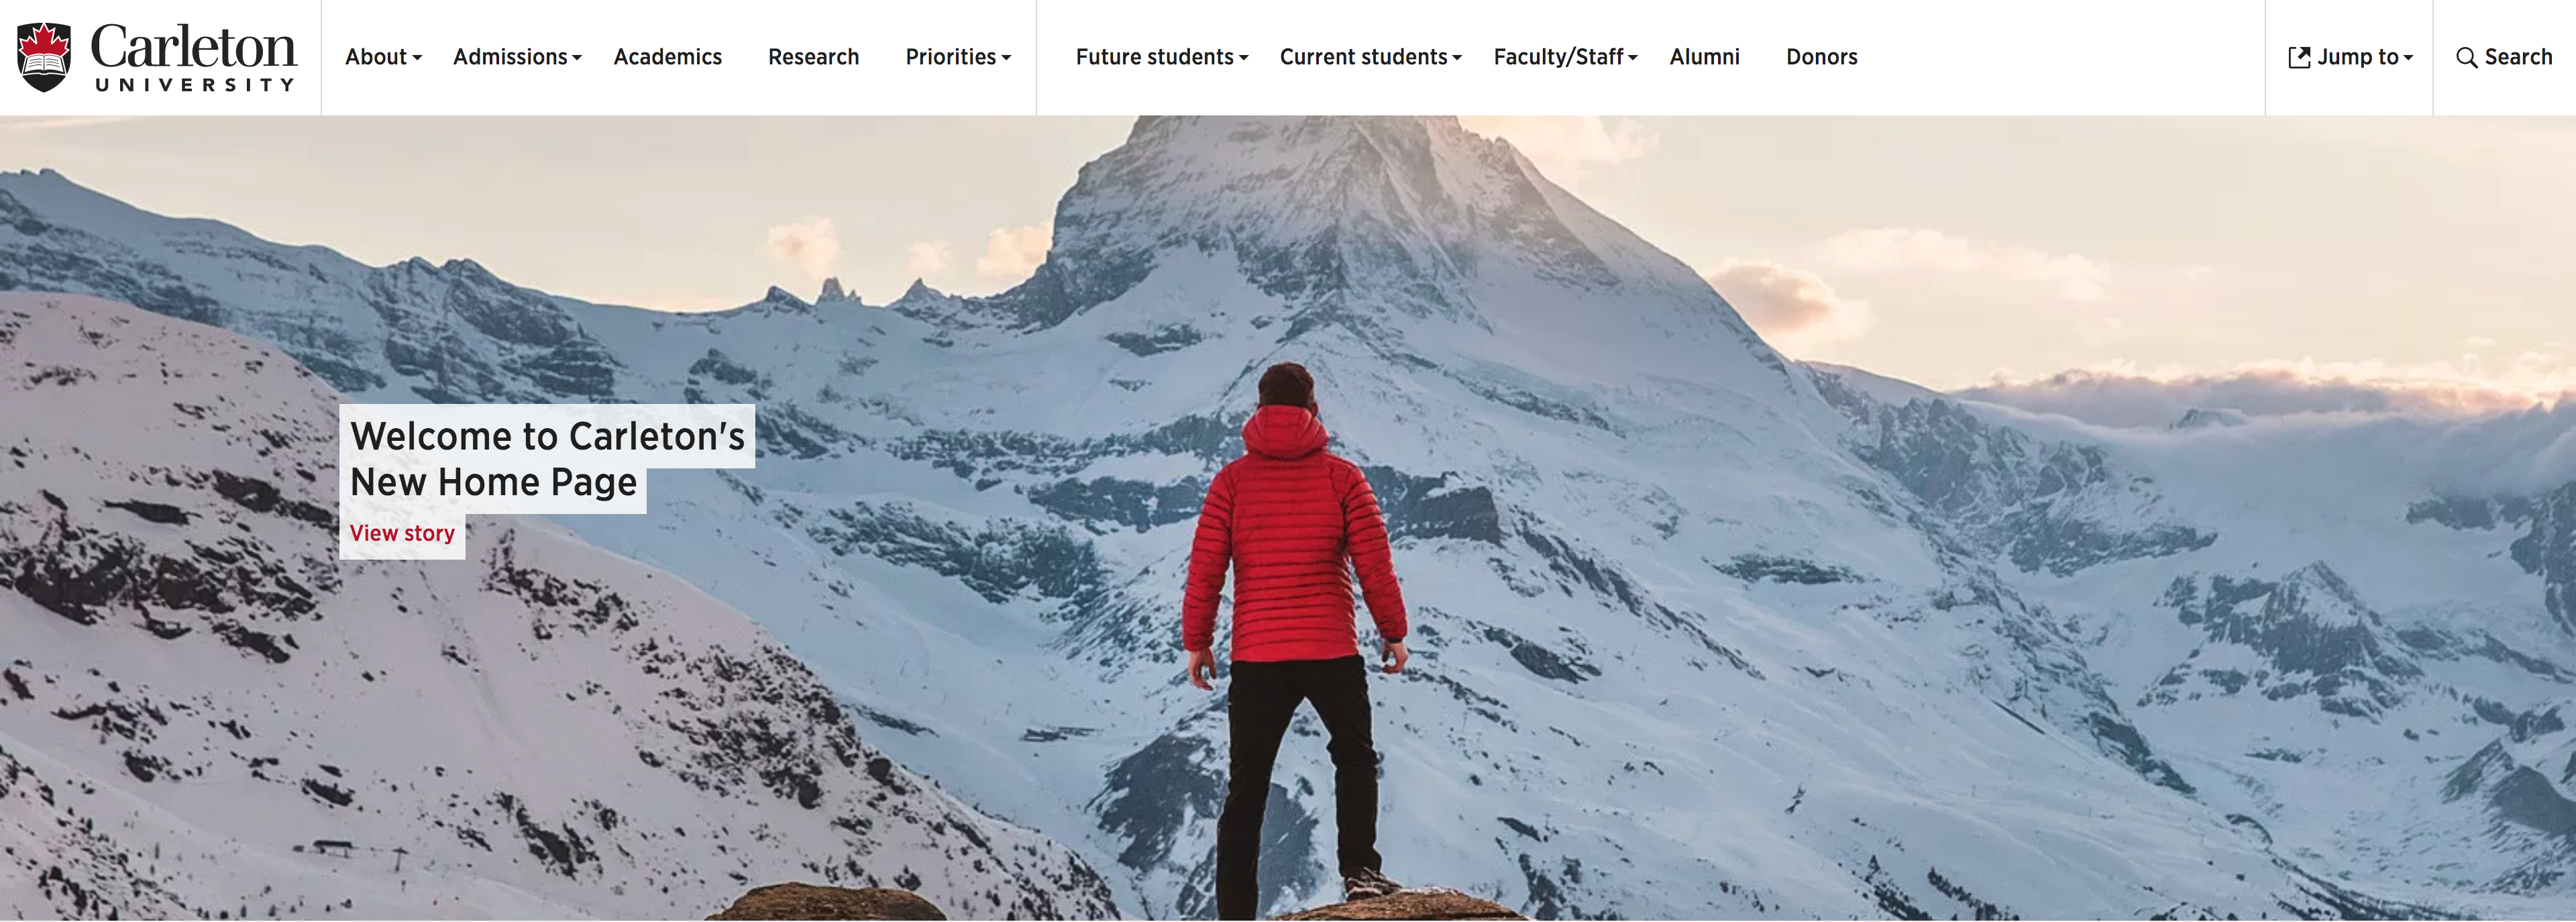 Carleton's new homepage showing top navigation that is now white, not black